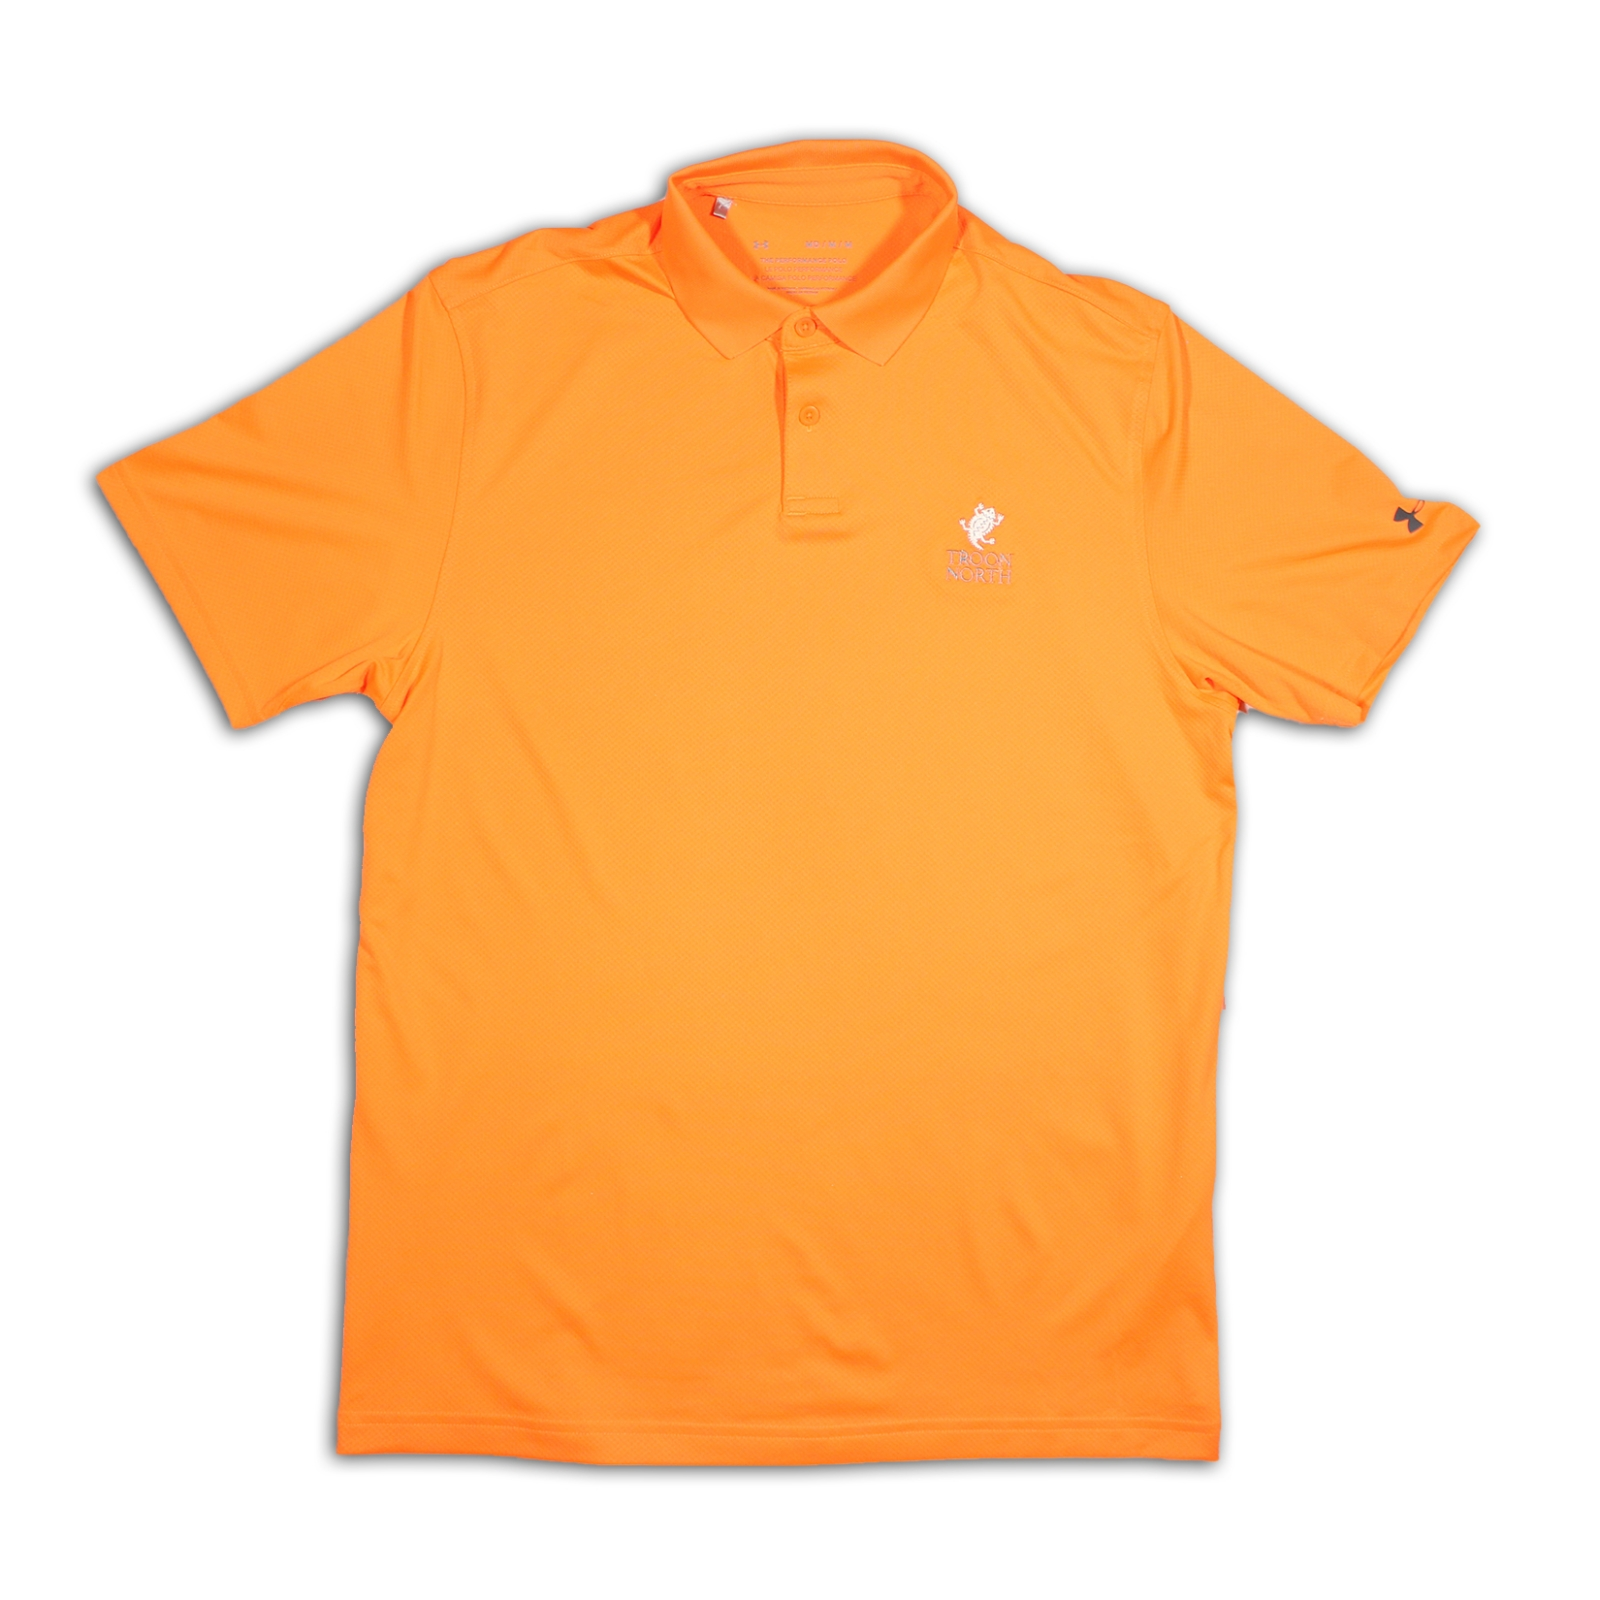 Under Armour Solid Orange Polo